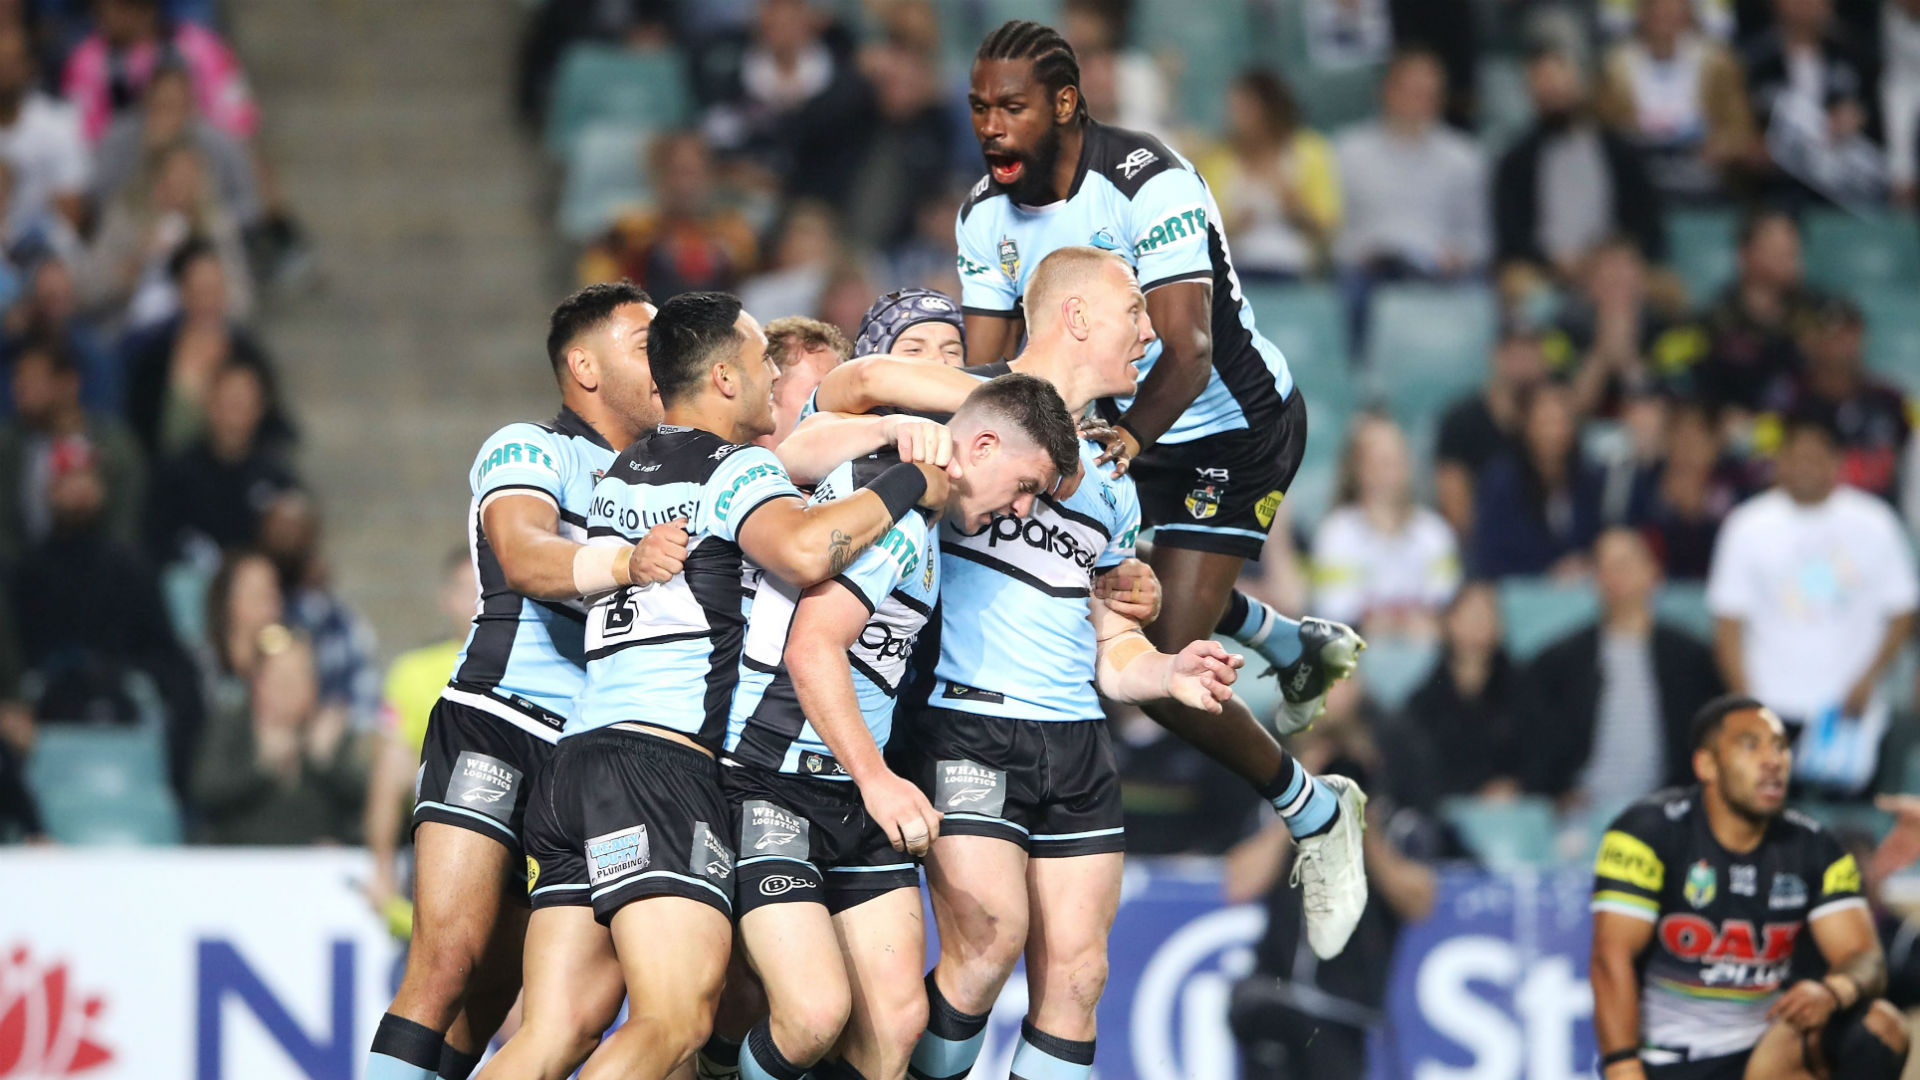 There will be a repeat of the 2016 NRL Grand Final in this year's preliminary round after Cronulla Sharks overcame Penrith Panthers.